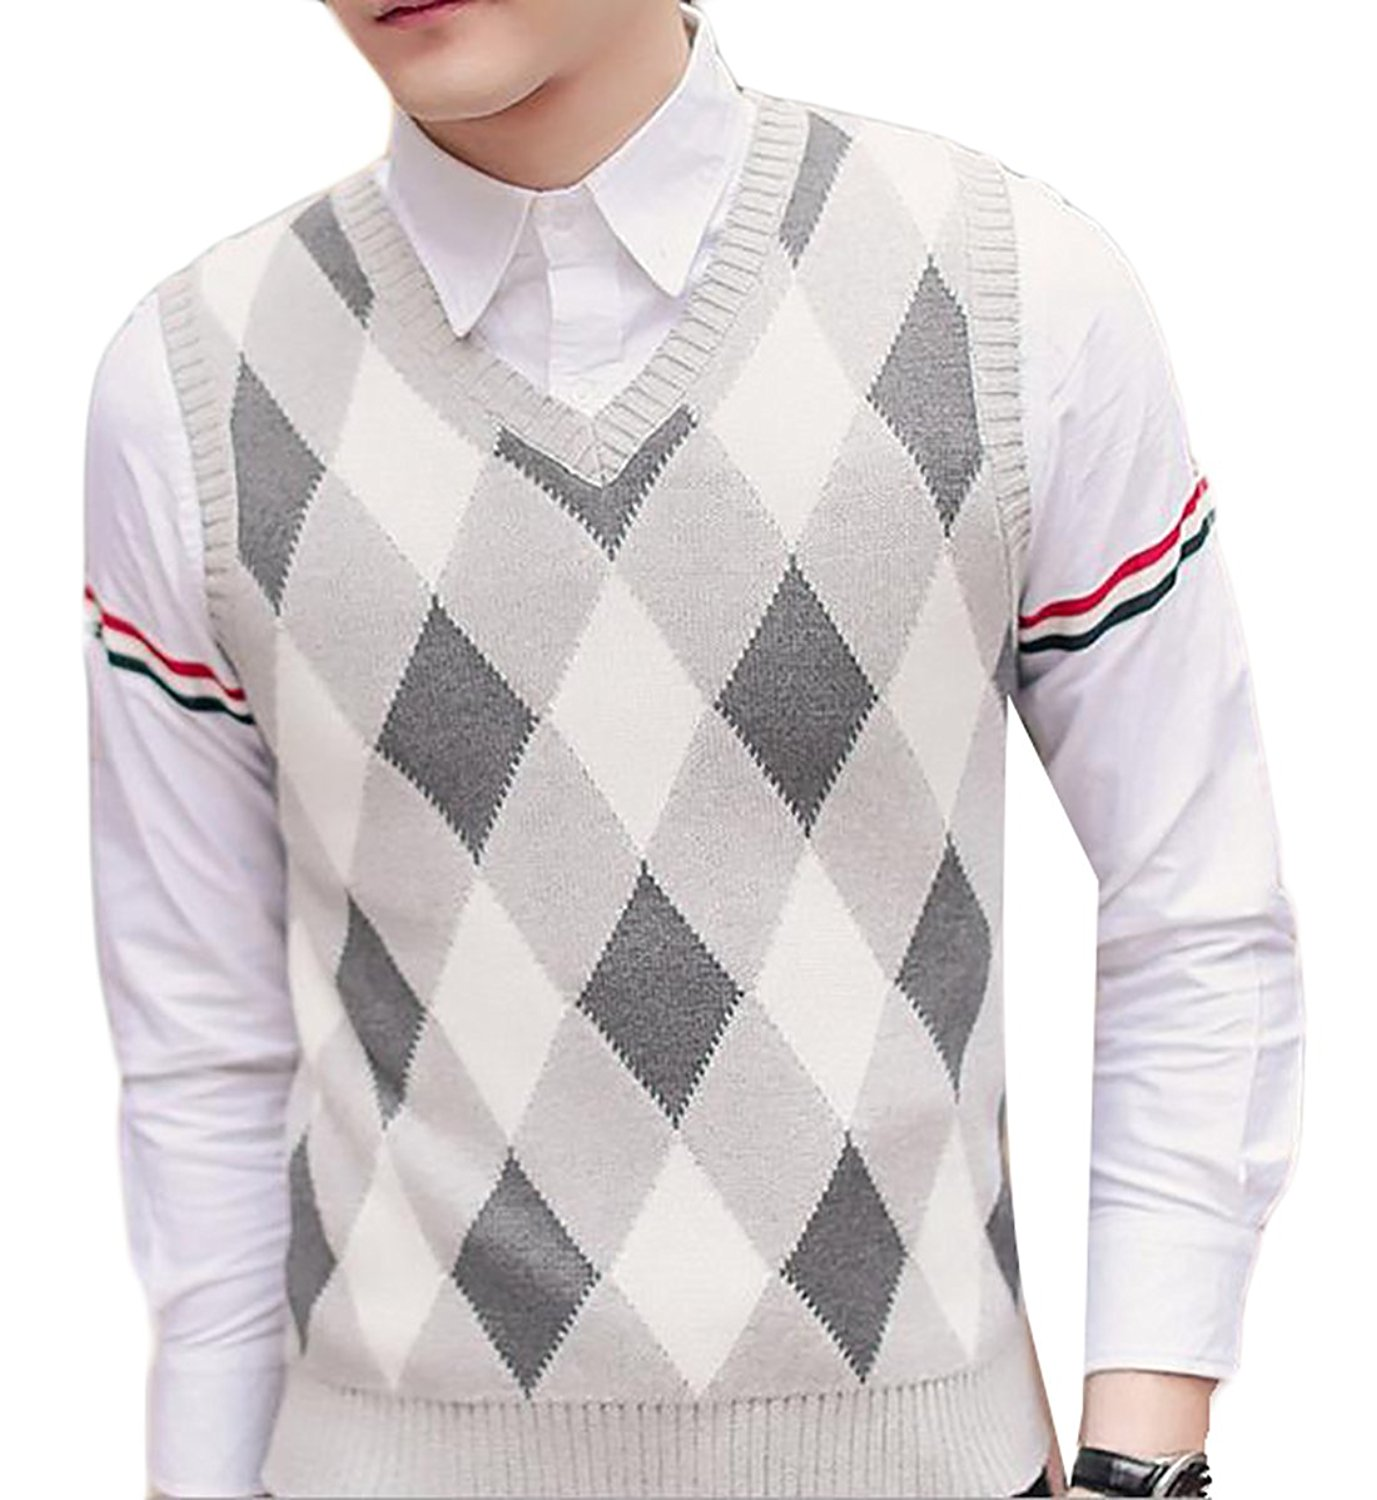 760d774c9db2cb Get Quotations · Fulok Mens Sweater Vest Plaid Pattern Thicken V-neck Knitted  Pullover